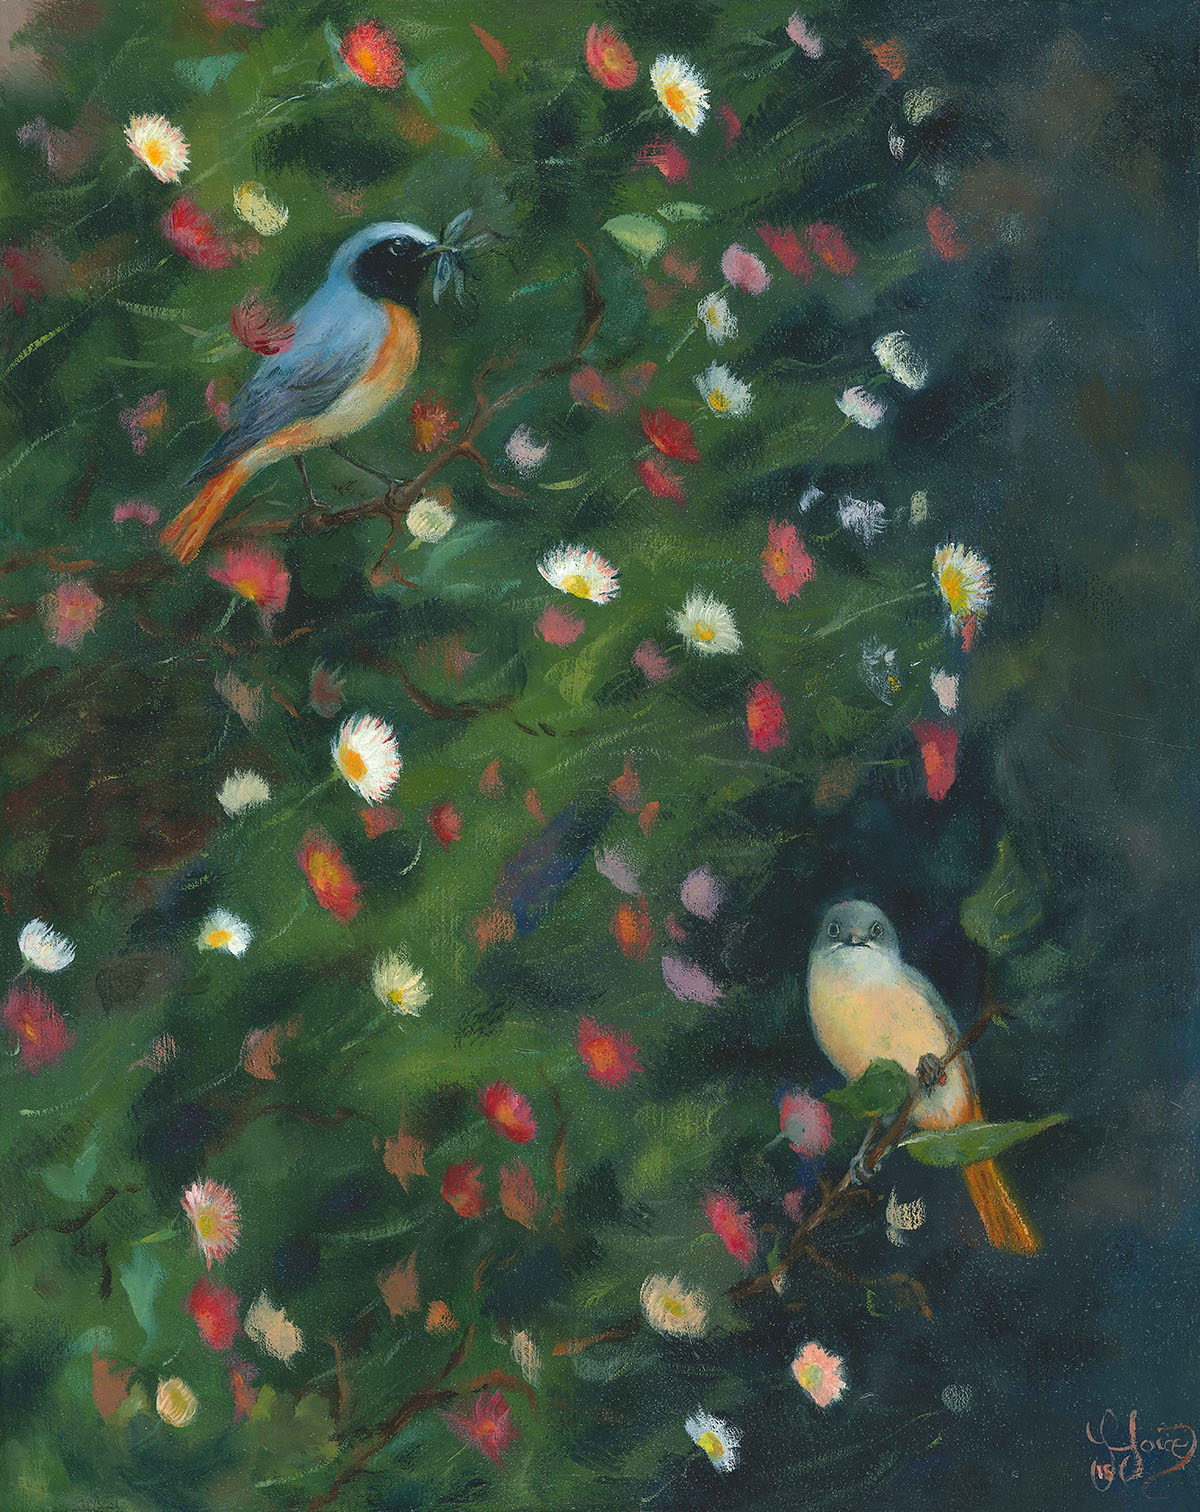 Redstarts and Erigeron Daisies, Stazzema. Oils on wood panel - 30 x 24 cm